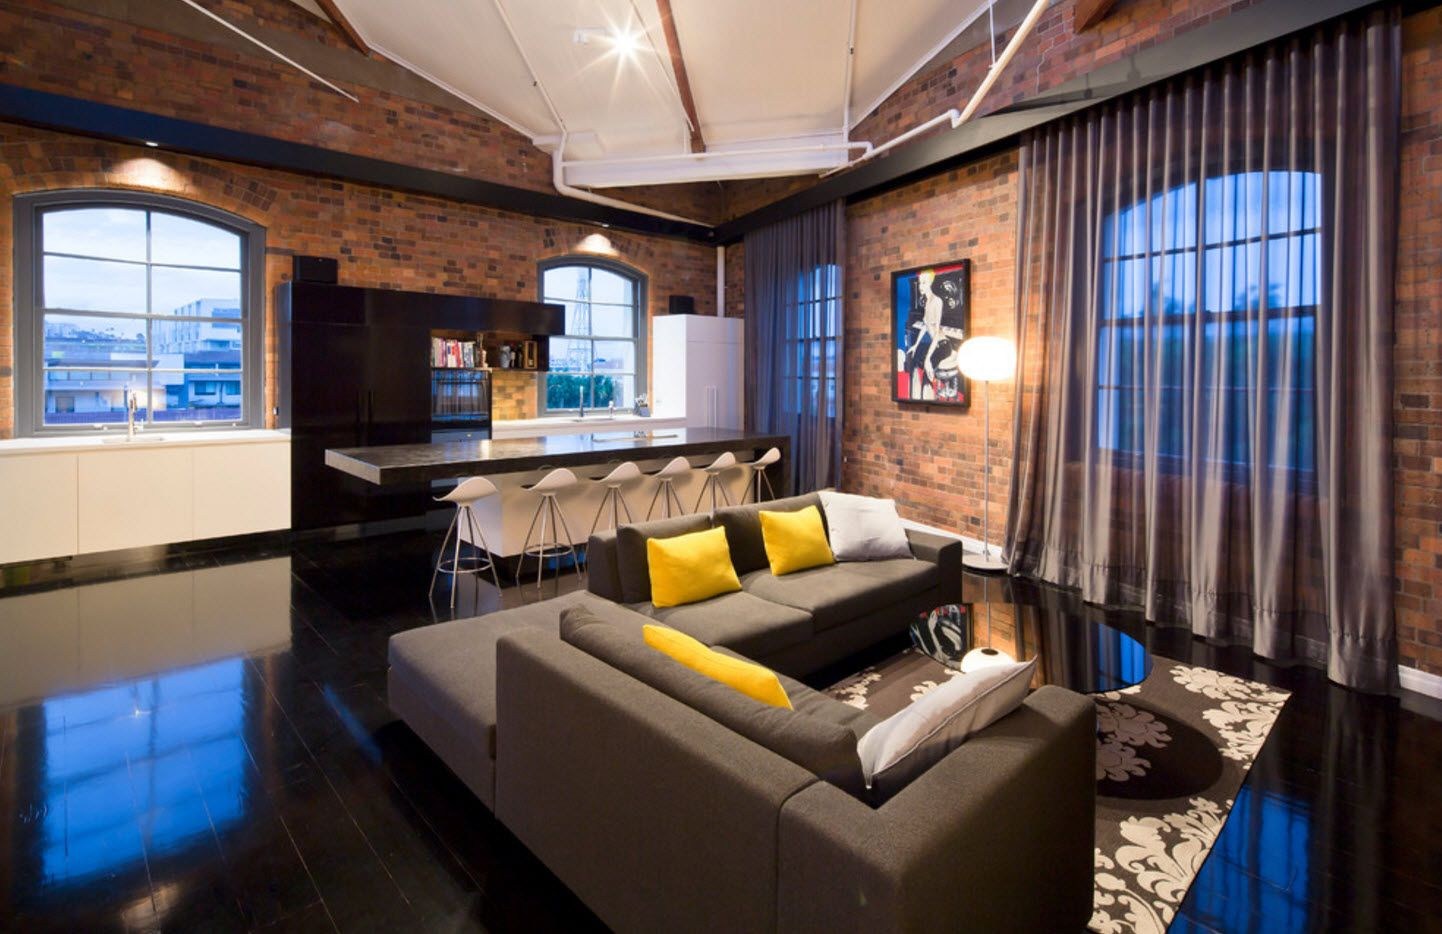 Brickwork, loft and fusion mix of styles in the modern interior